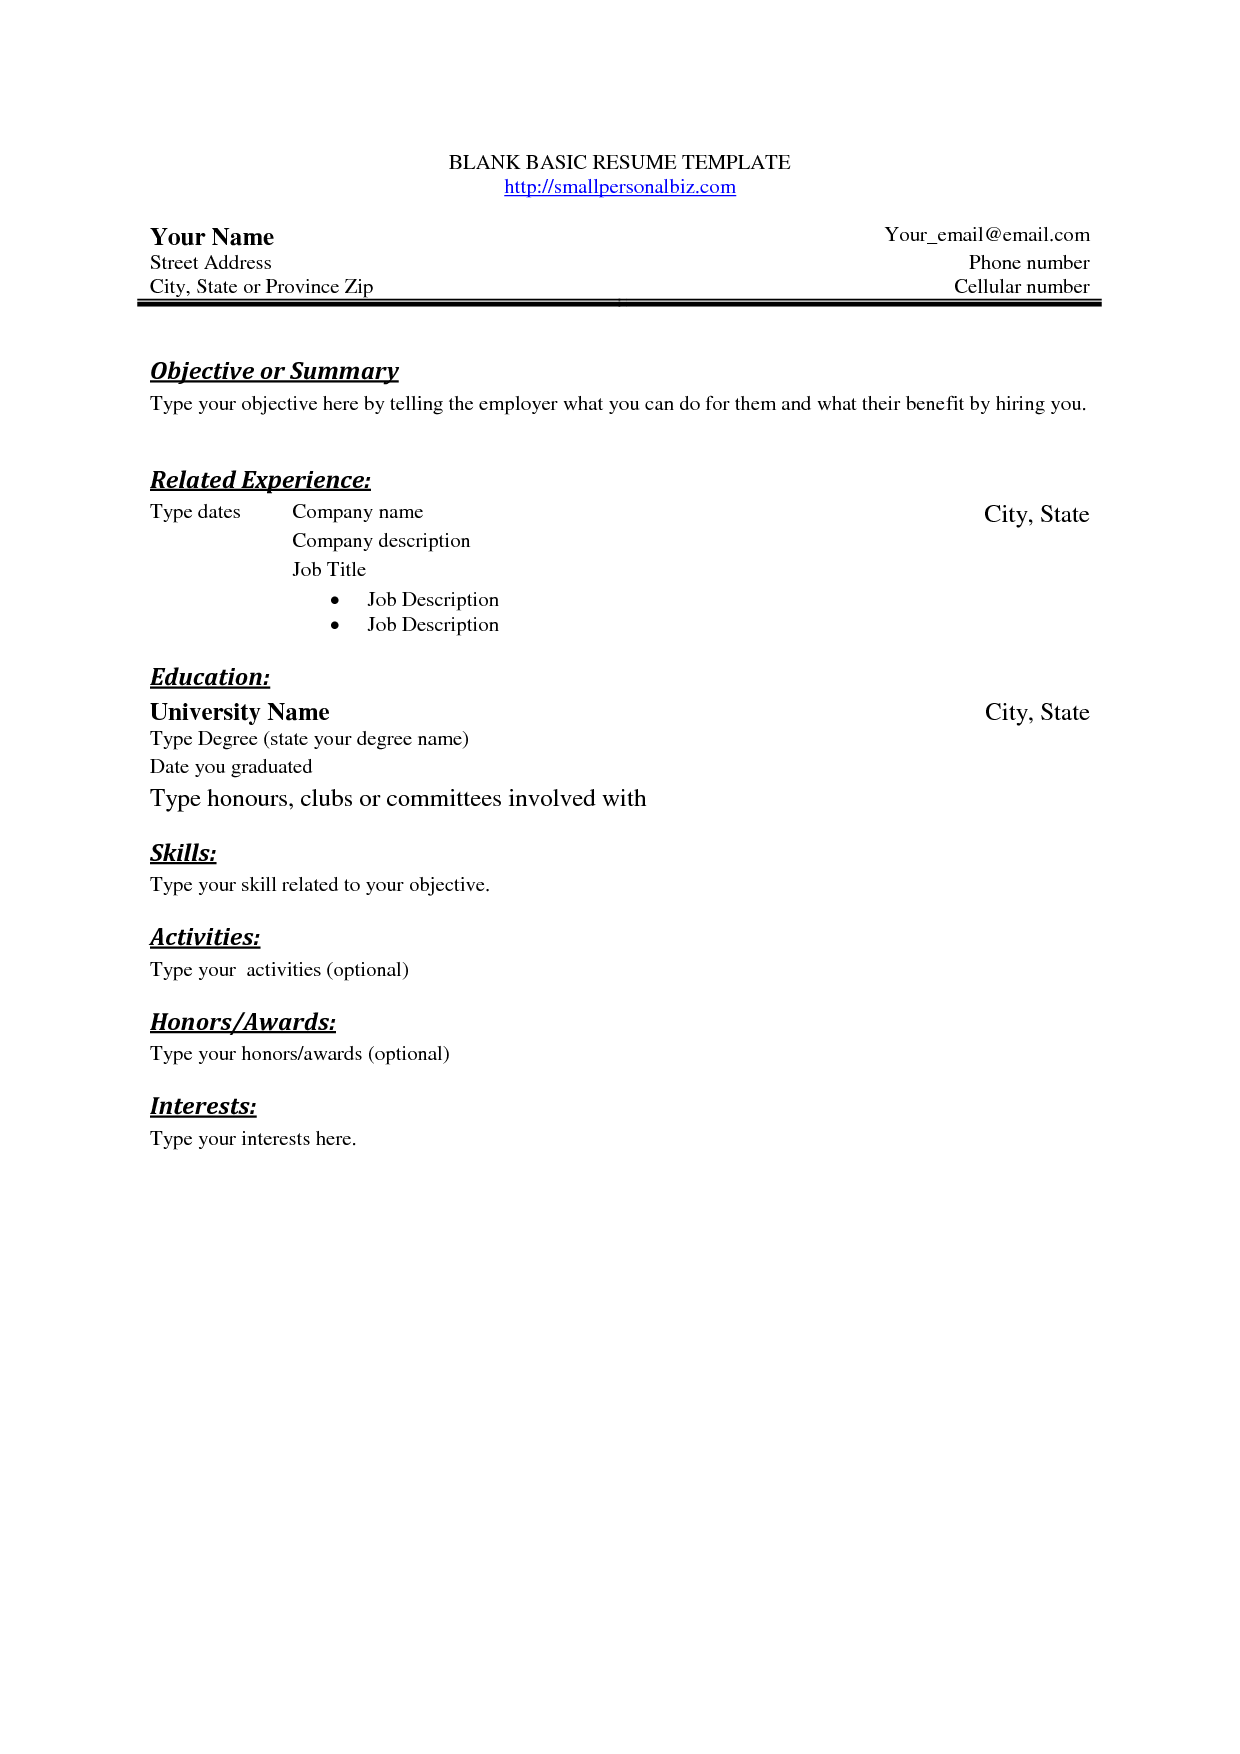 Amazing Stylist And Luxury Simple Resume Layout 10 Free Basic Blank Resume Template    Resume Example Intended For Free Simple Resume Templates